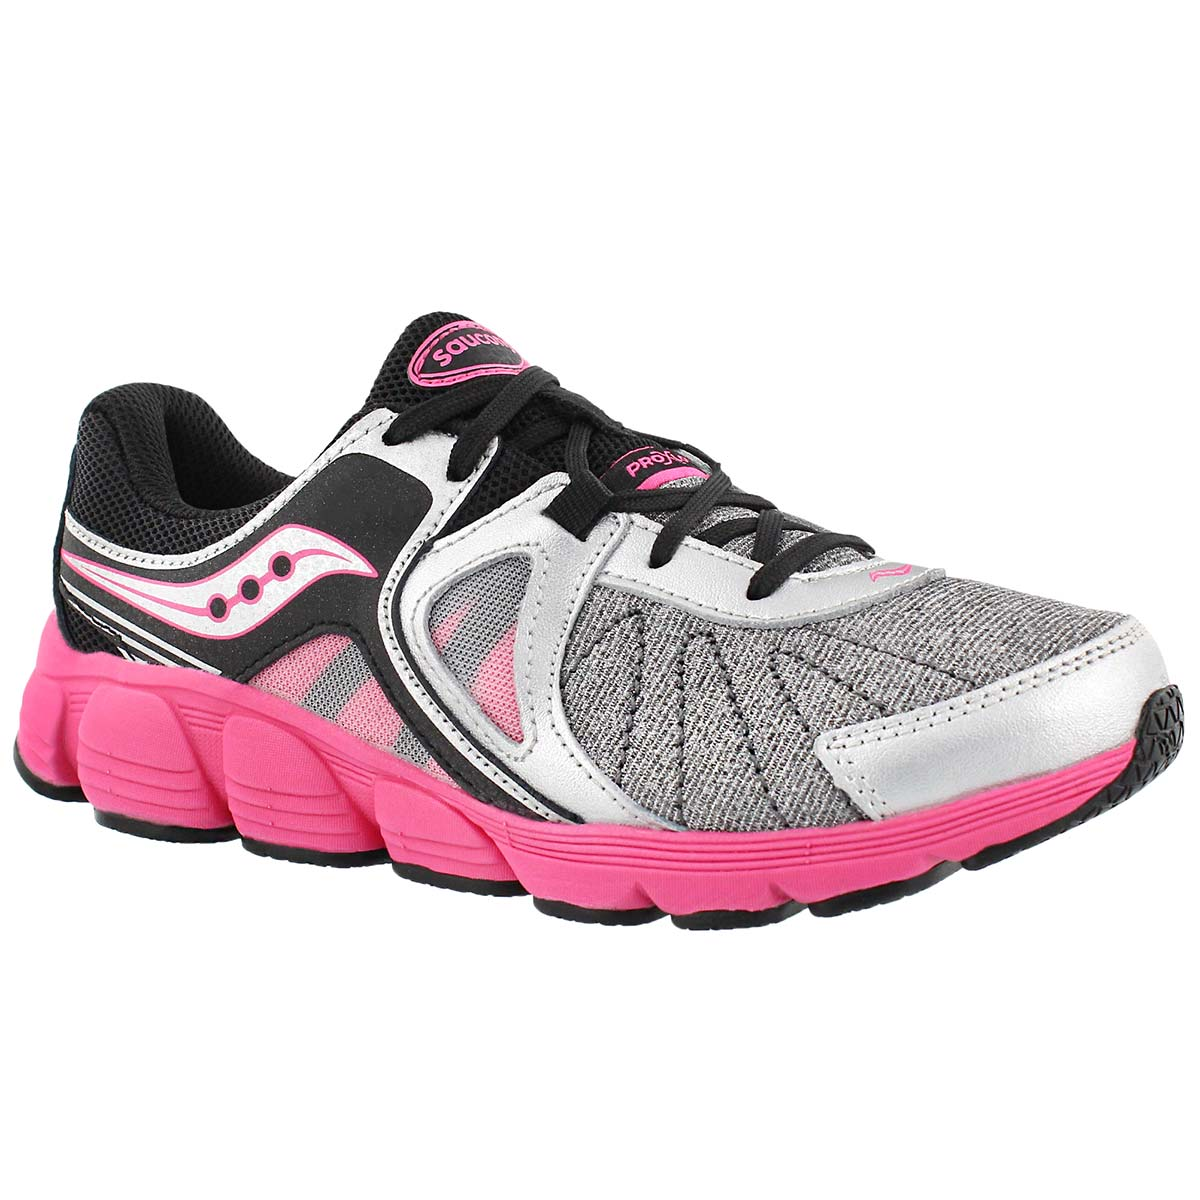 Girls' KOTARO 3 silver/pink lace up runners